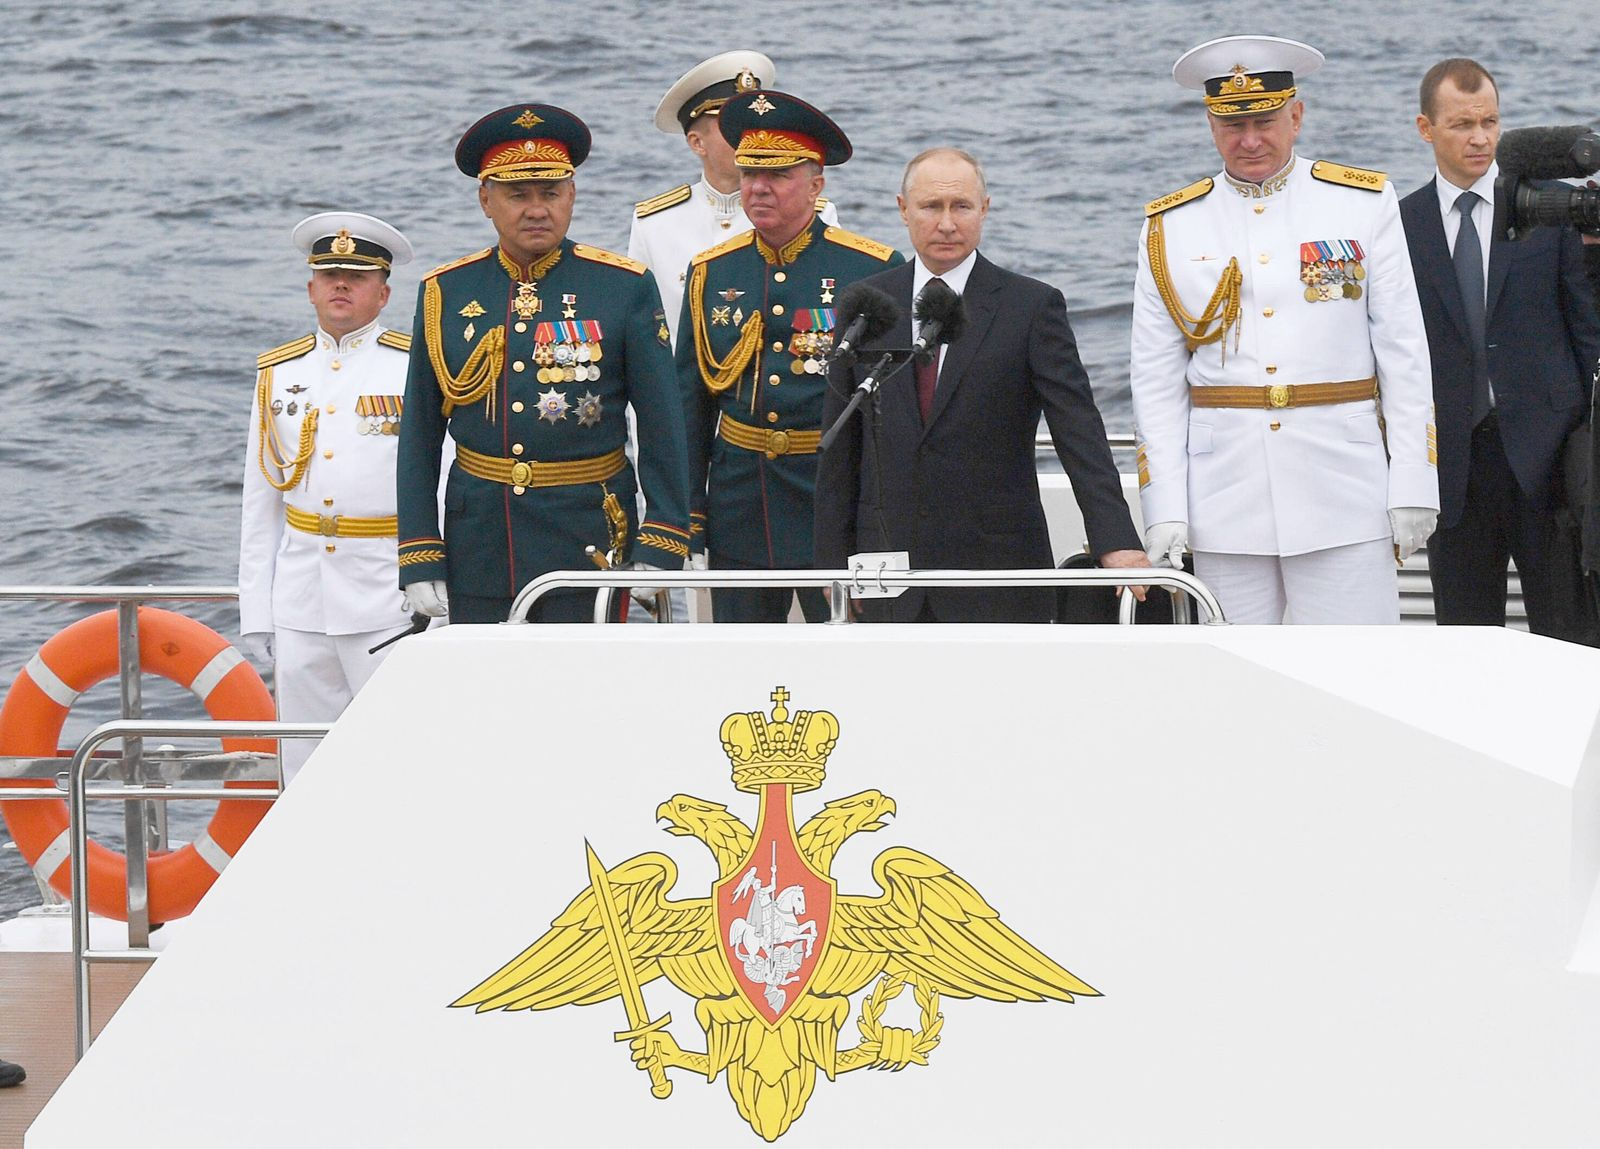 ST PETERSBURG, RUSSIA - JULY 25, 2021: Russia s President Vladimir Putin (C) watches the main naval parade on Russian N